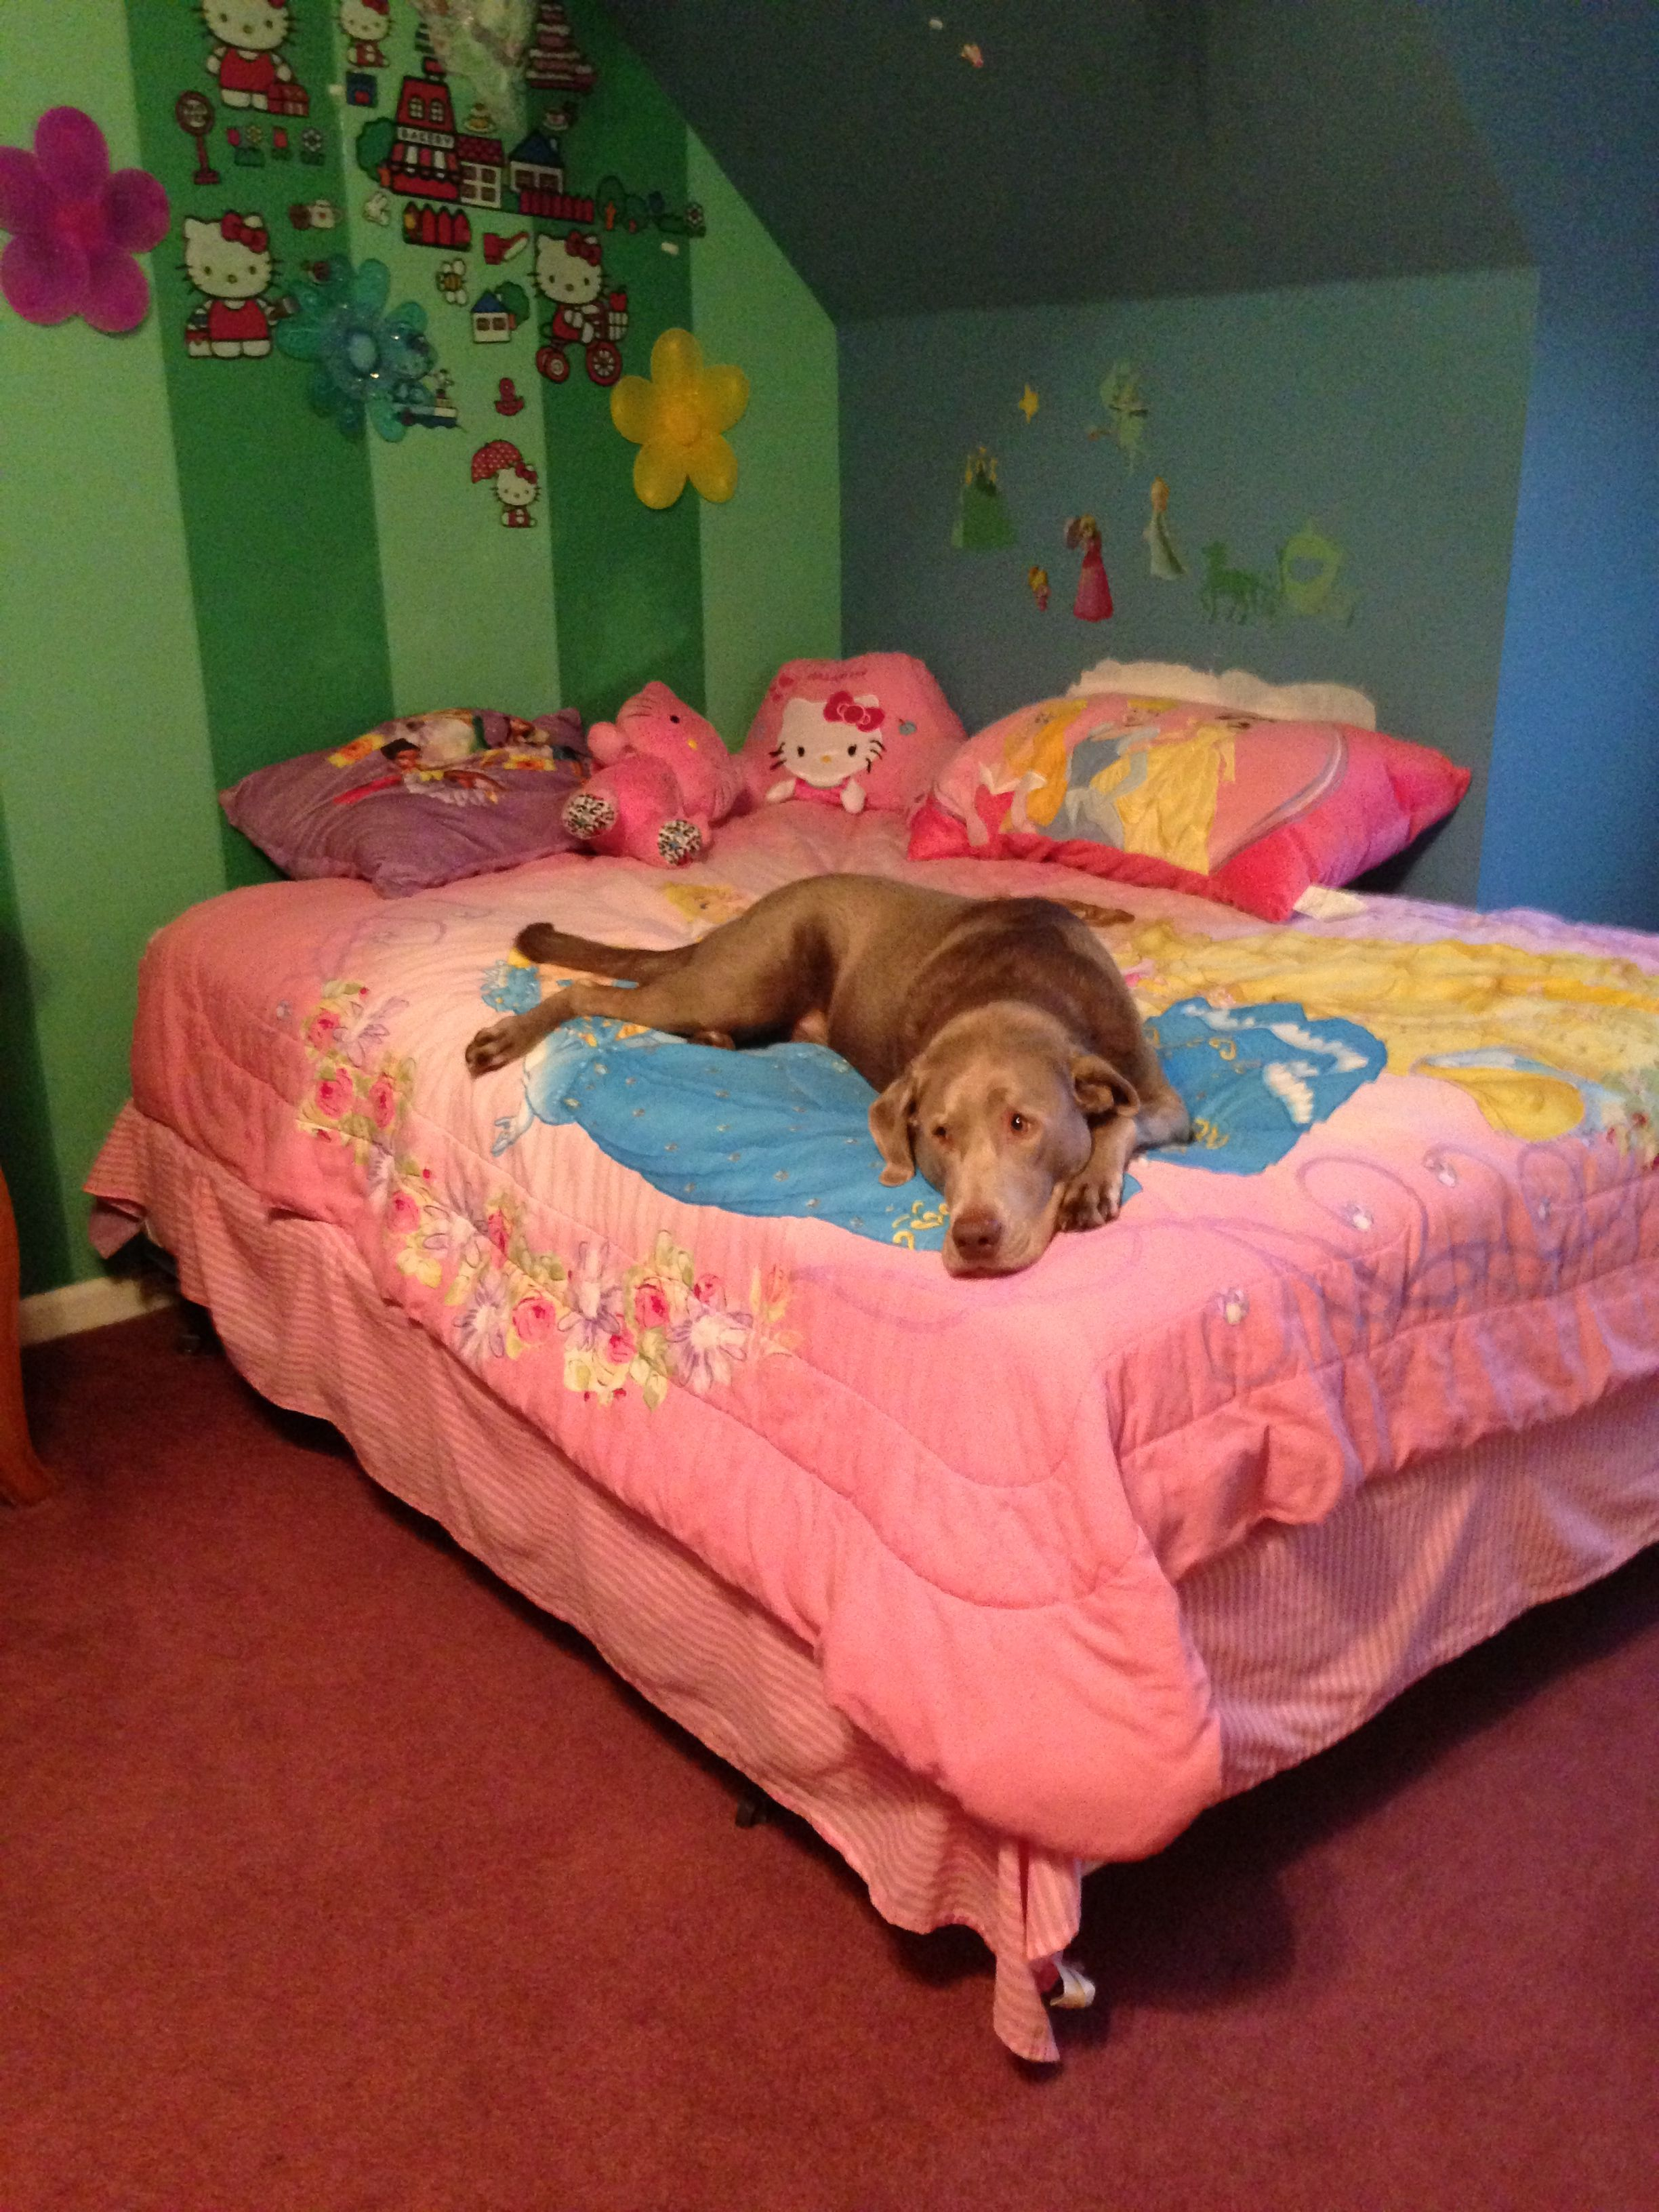 Busted... You caught me on the Princess bed...don't tell